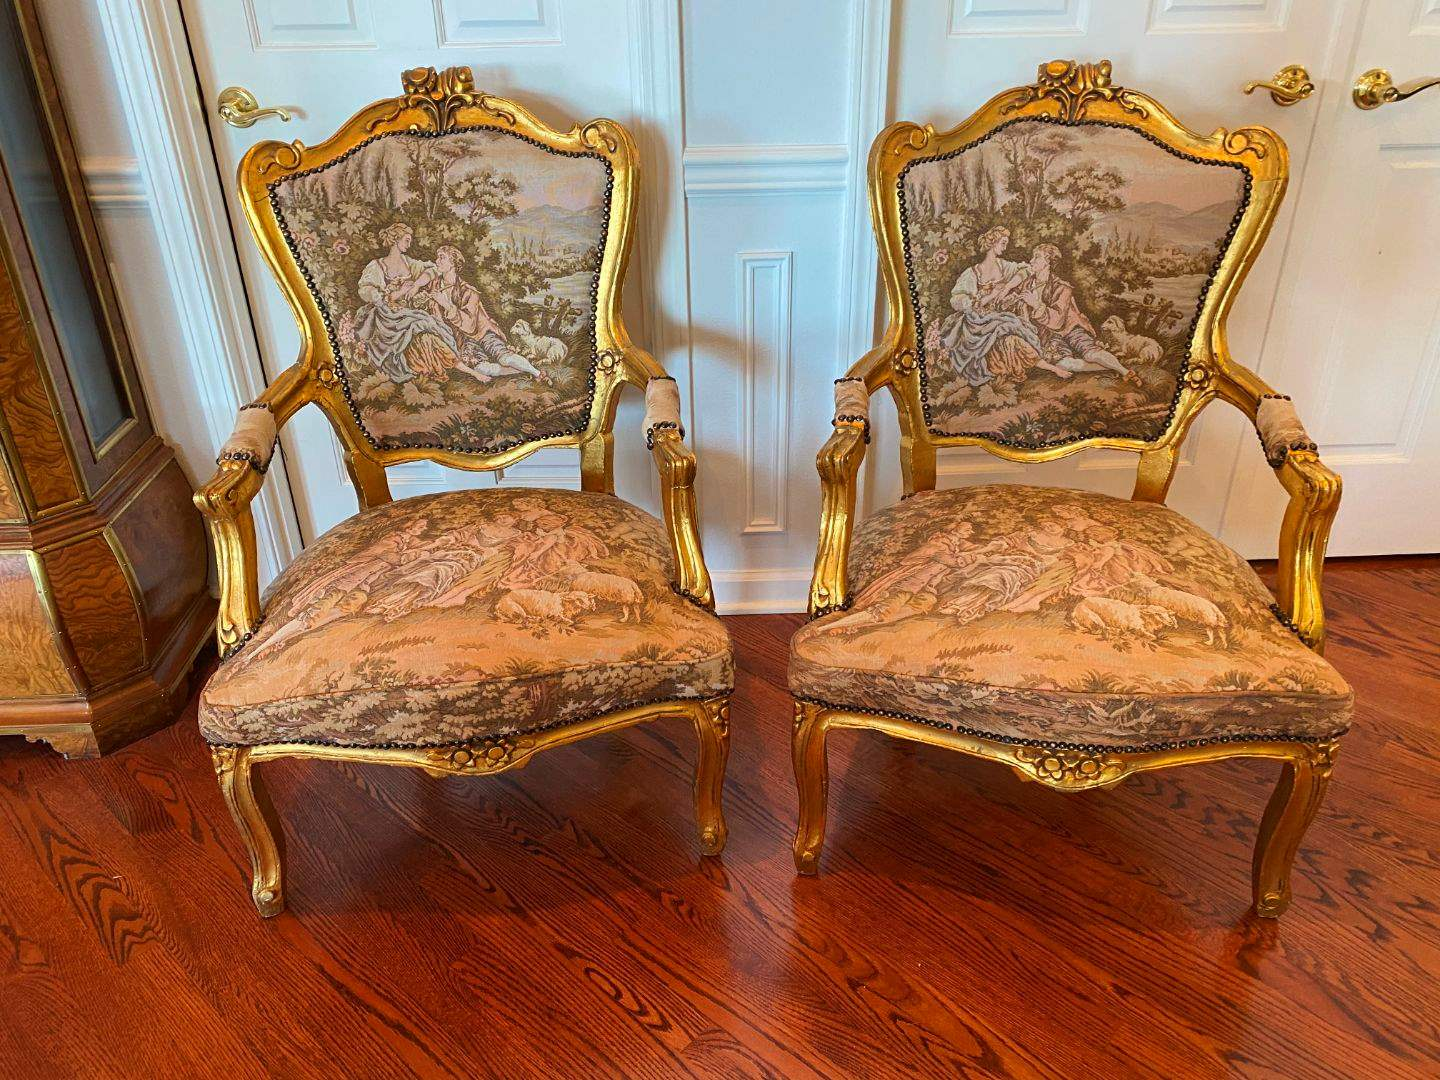 Lot # 4 - Set of Two French Provincial Hand Embroidered Wood Arm Chairs (main image)